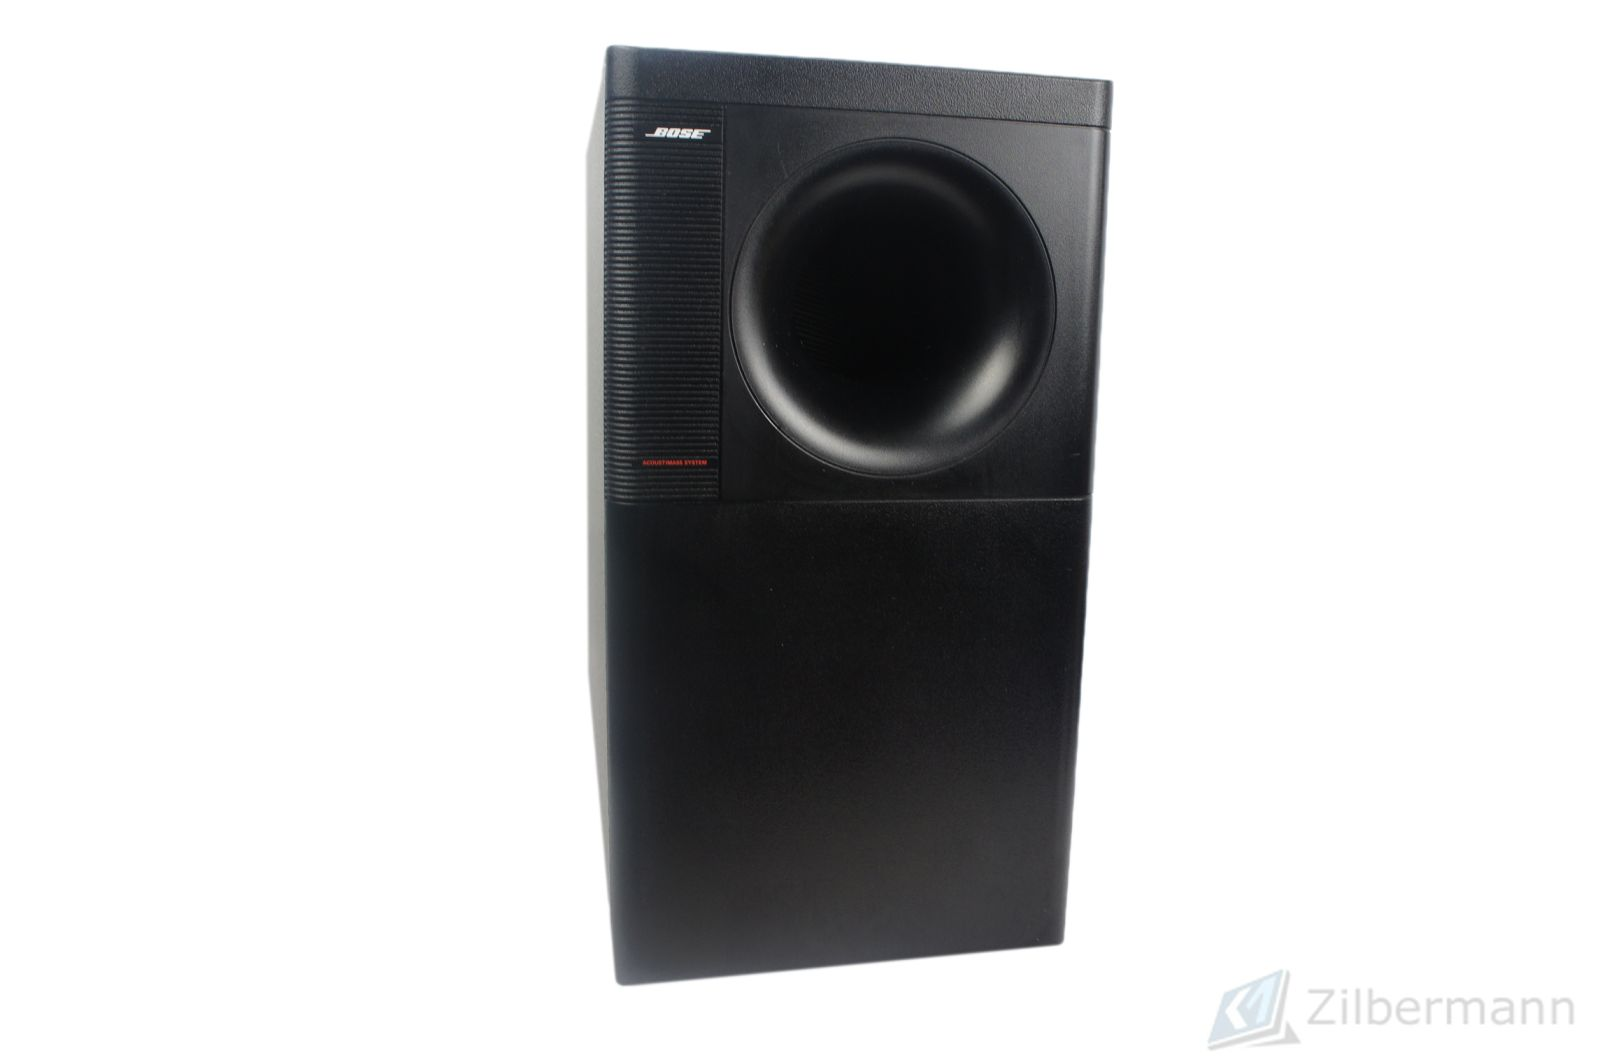 Bose_Acoustimass_6_Series_II_Heimkino-System_Subwoofer_02